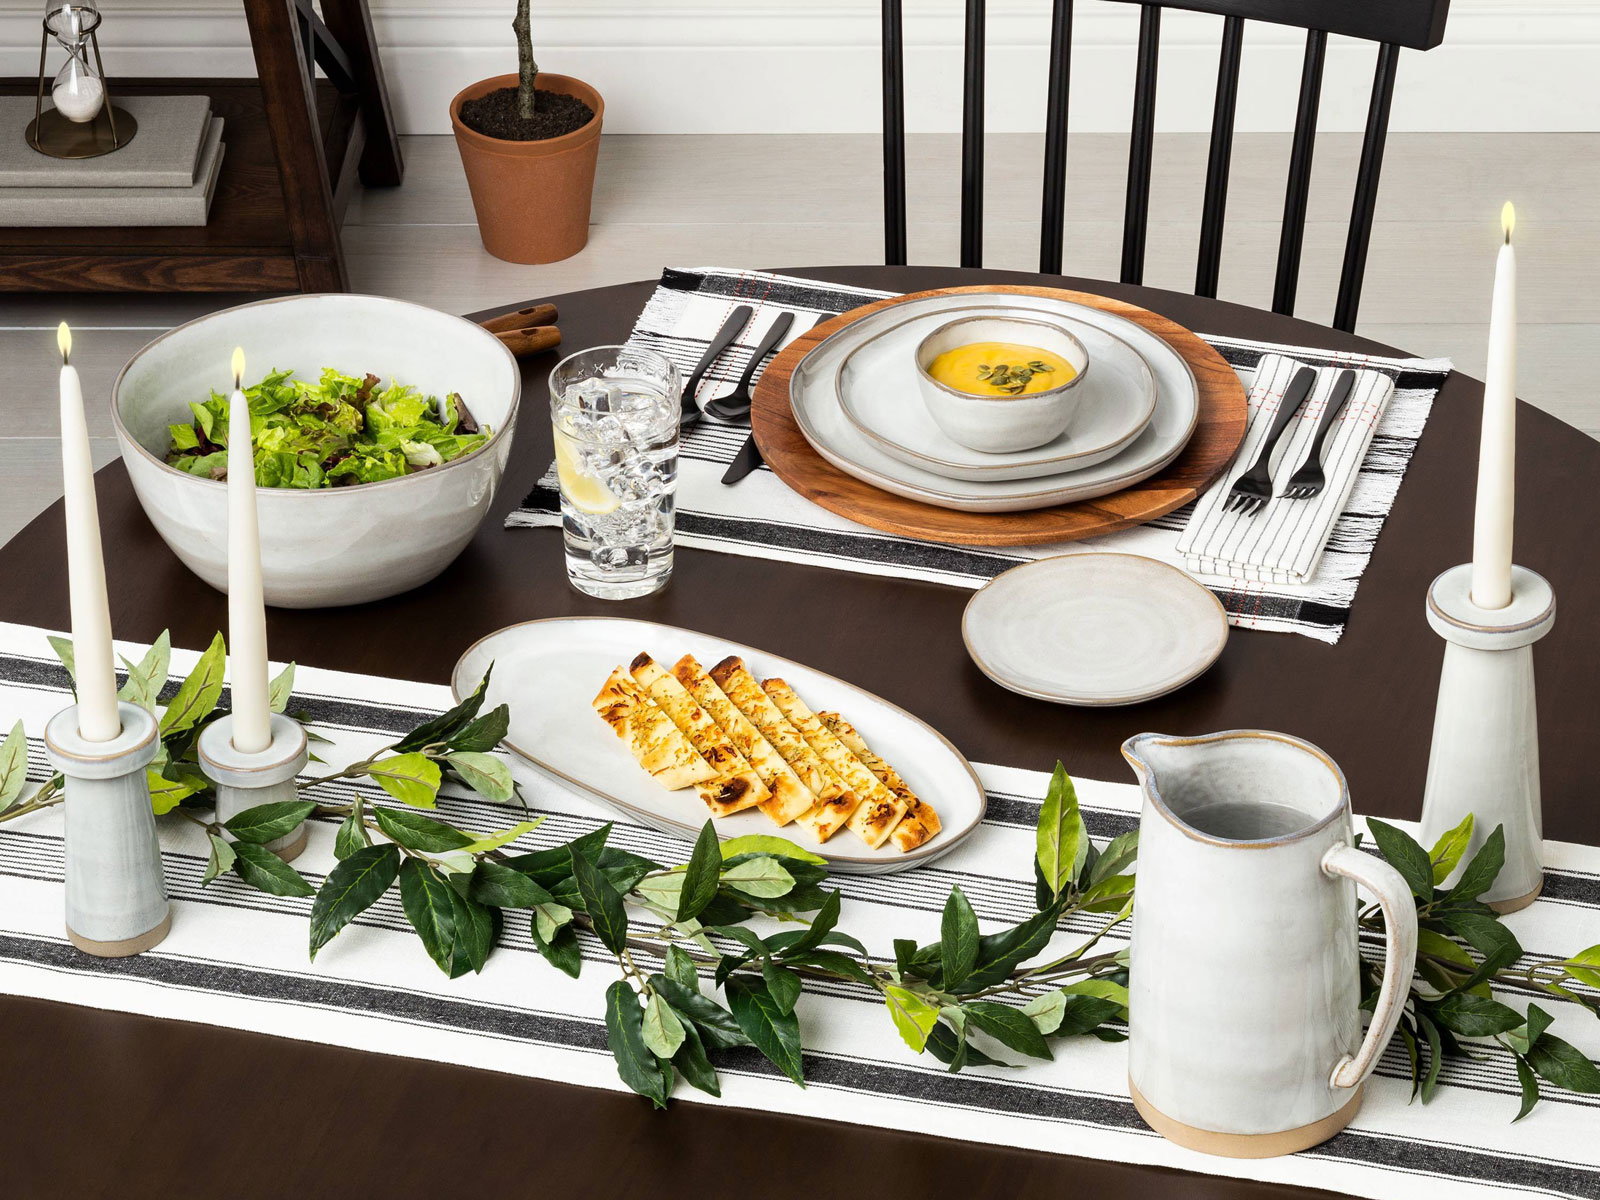 hearth and hand kitchen fall 2019 dinner table